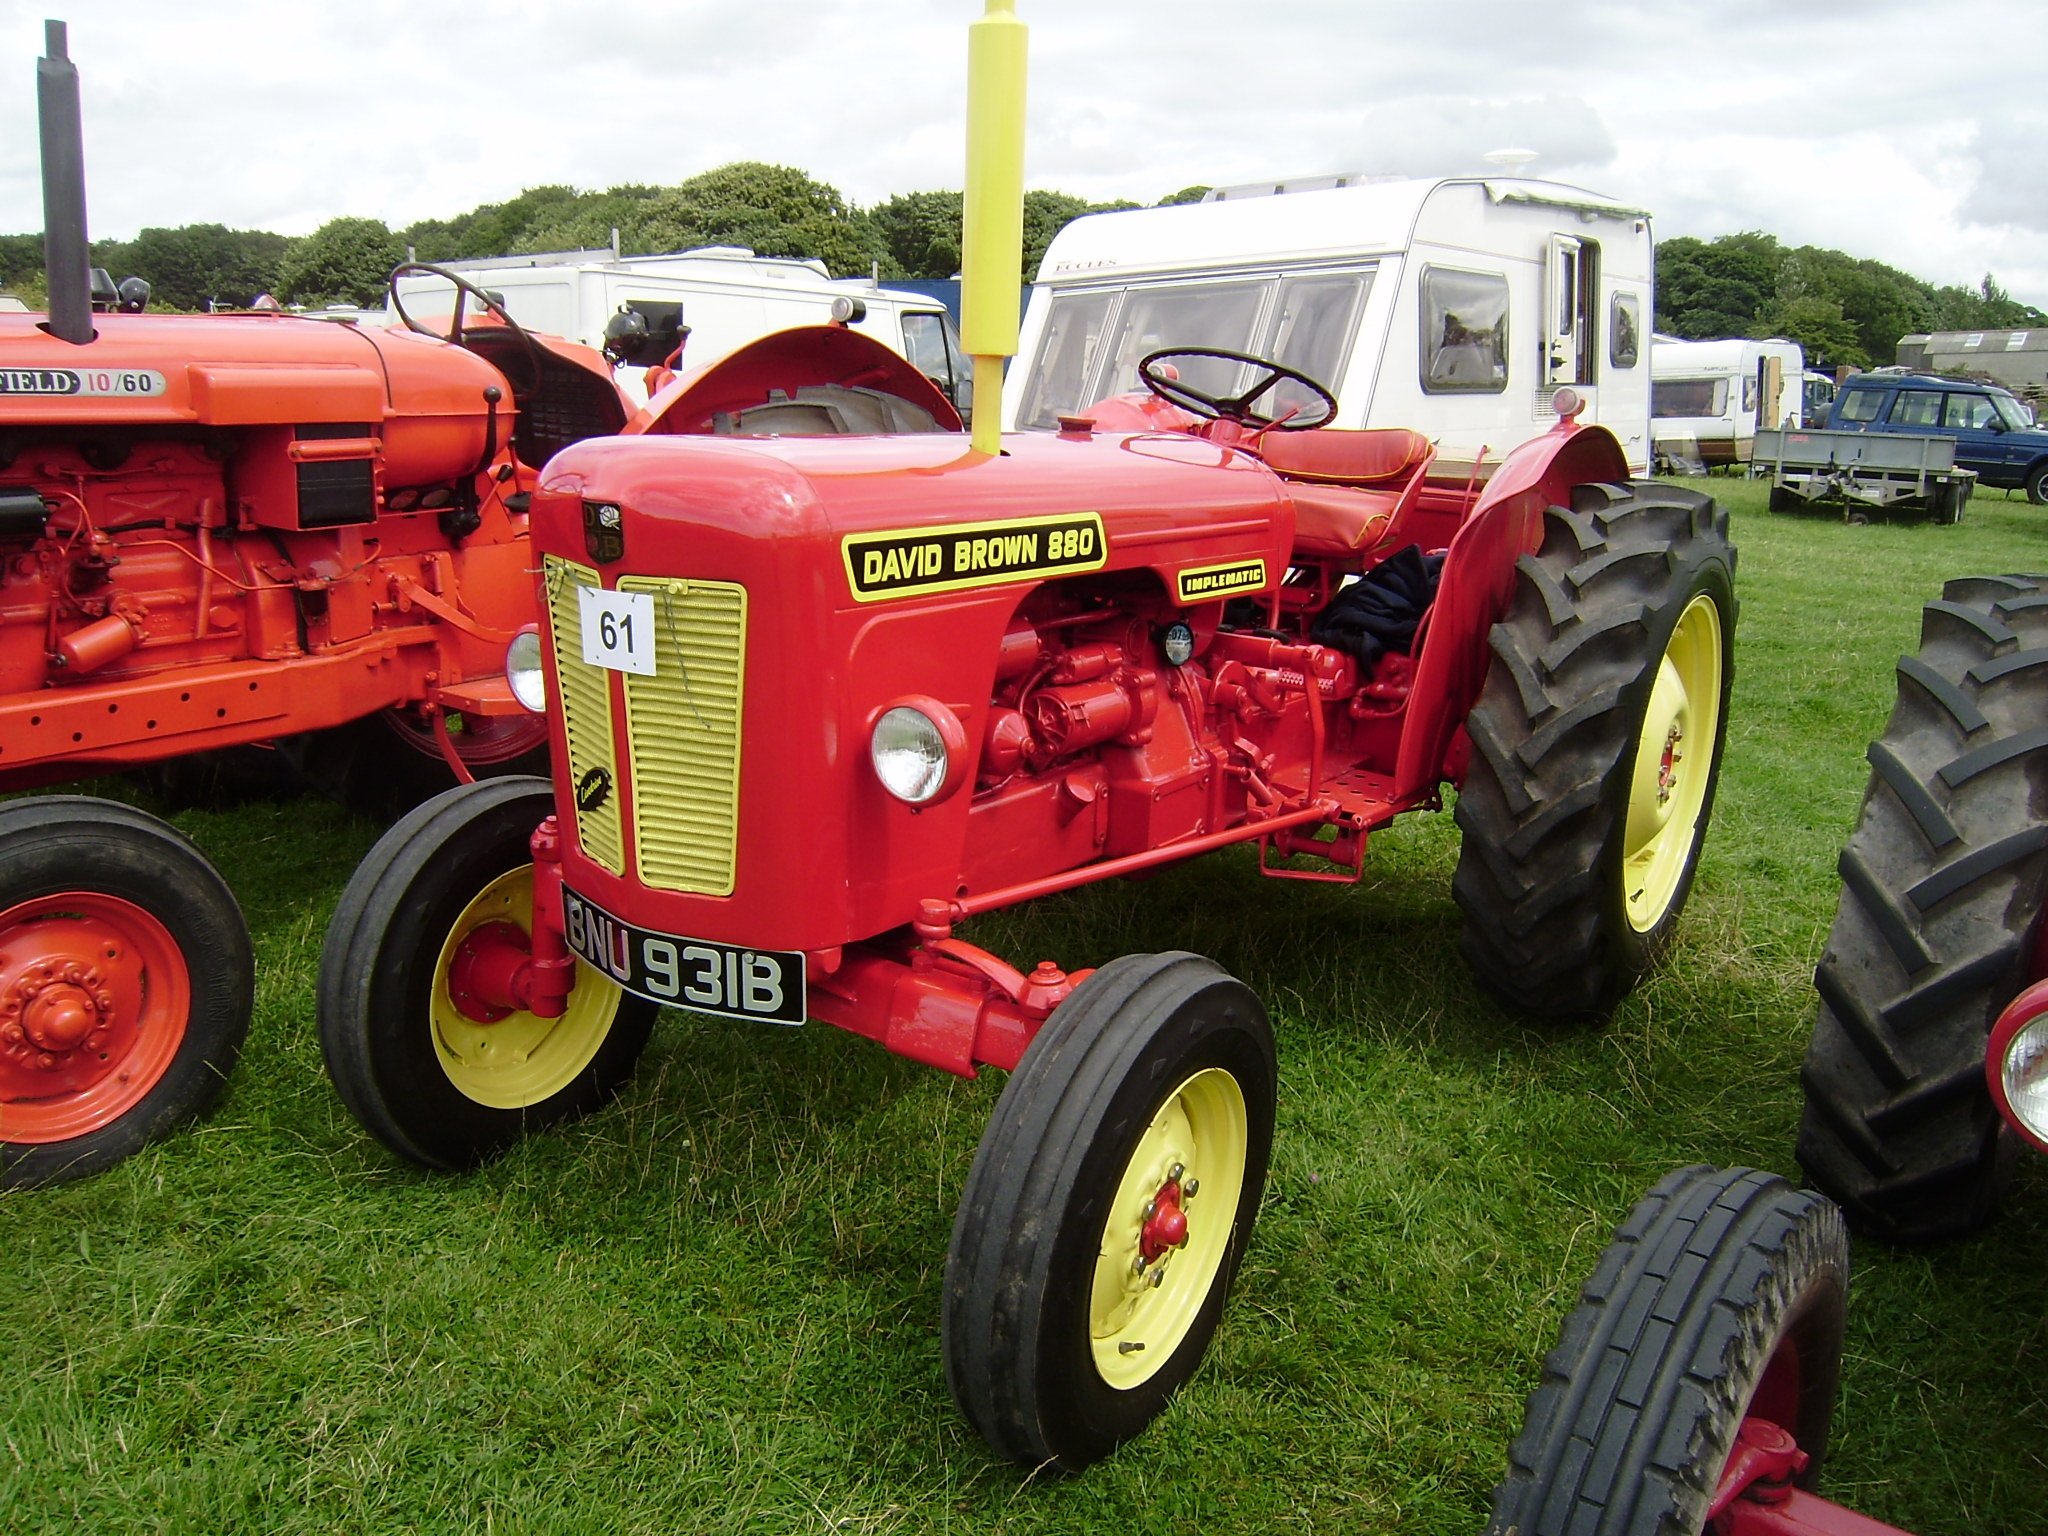 Case 990 Farm Tractors Parts : David brown tractor construction plant wiki the